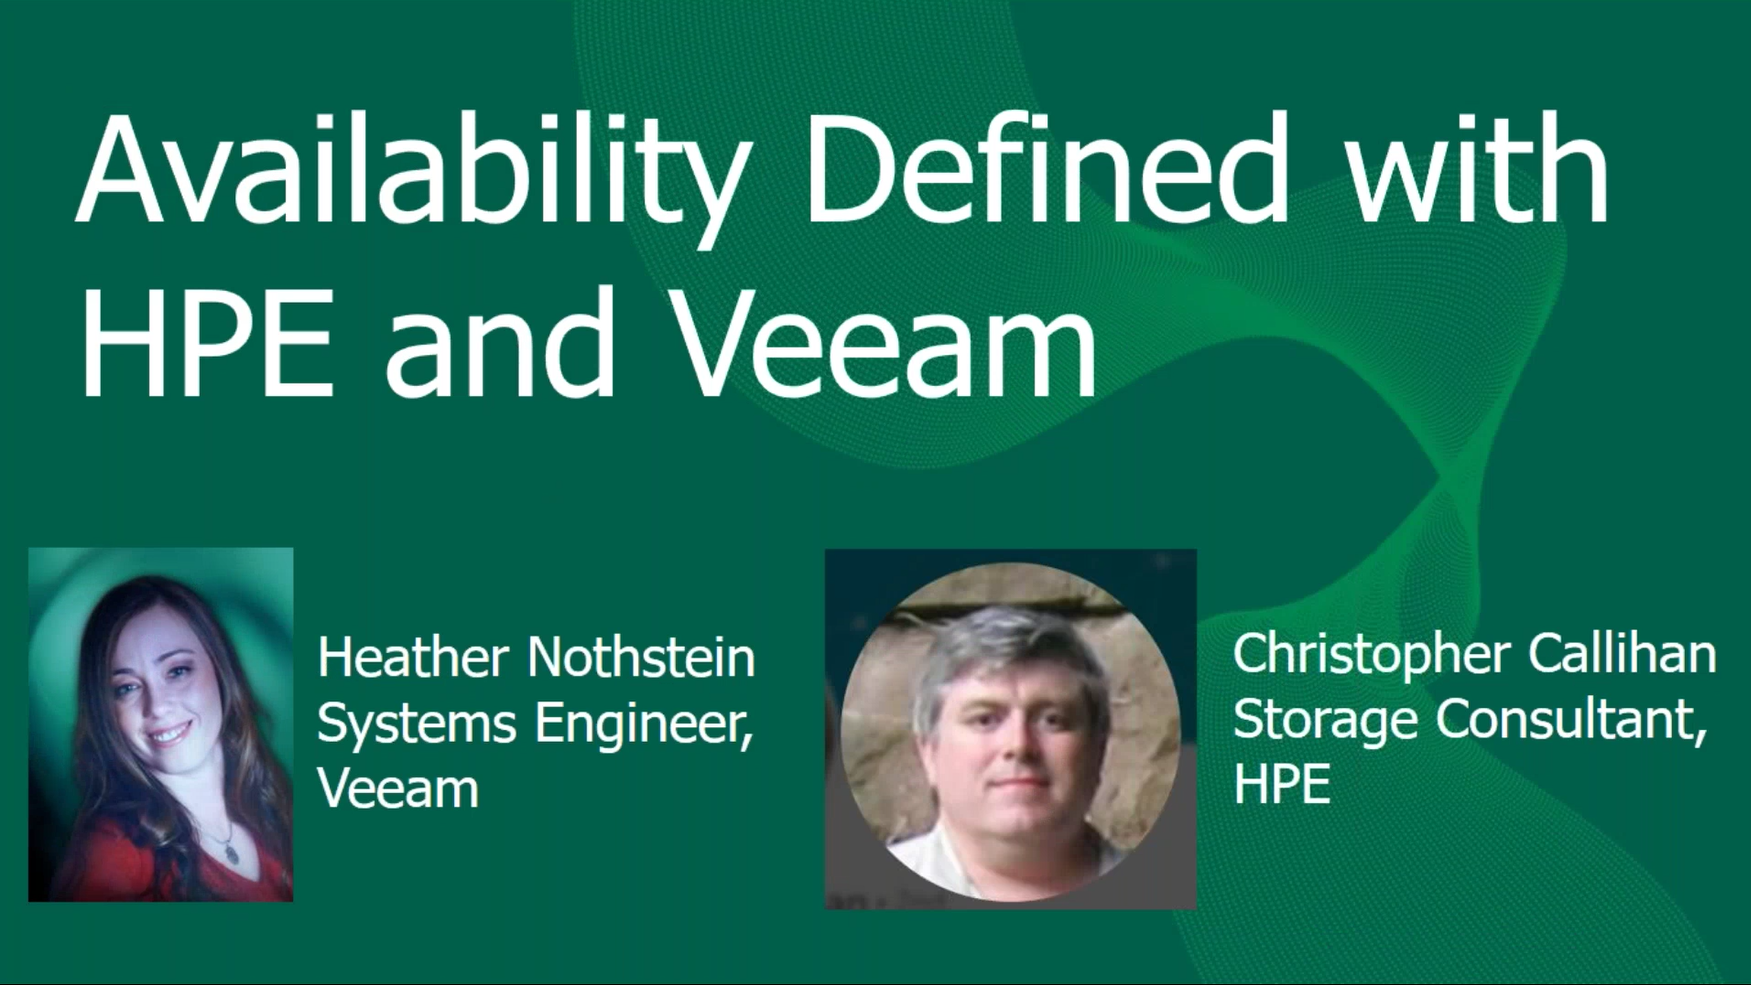 HPE and Veeam Bring Rock Solid Availability  to your data center